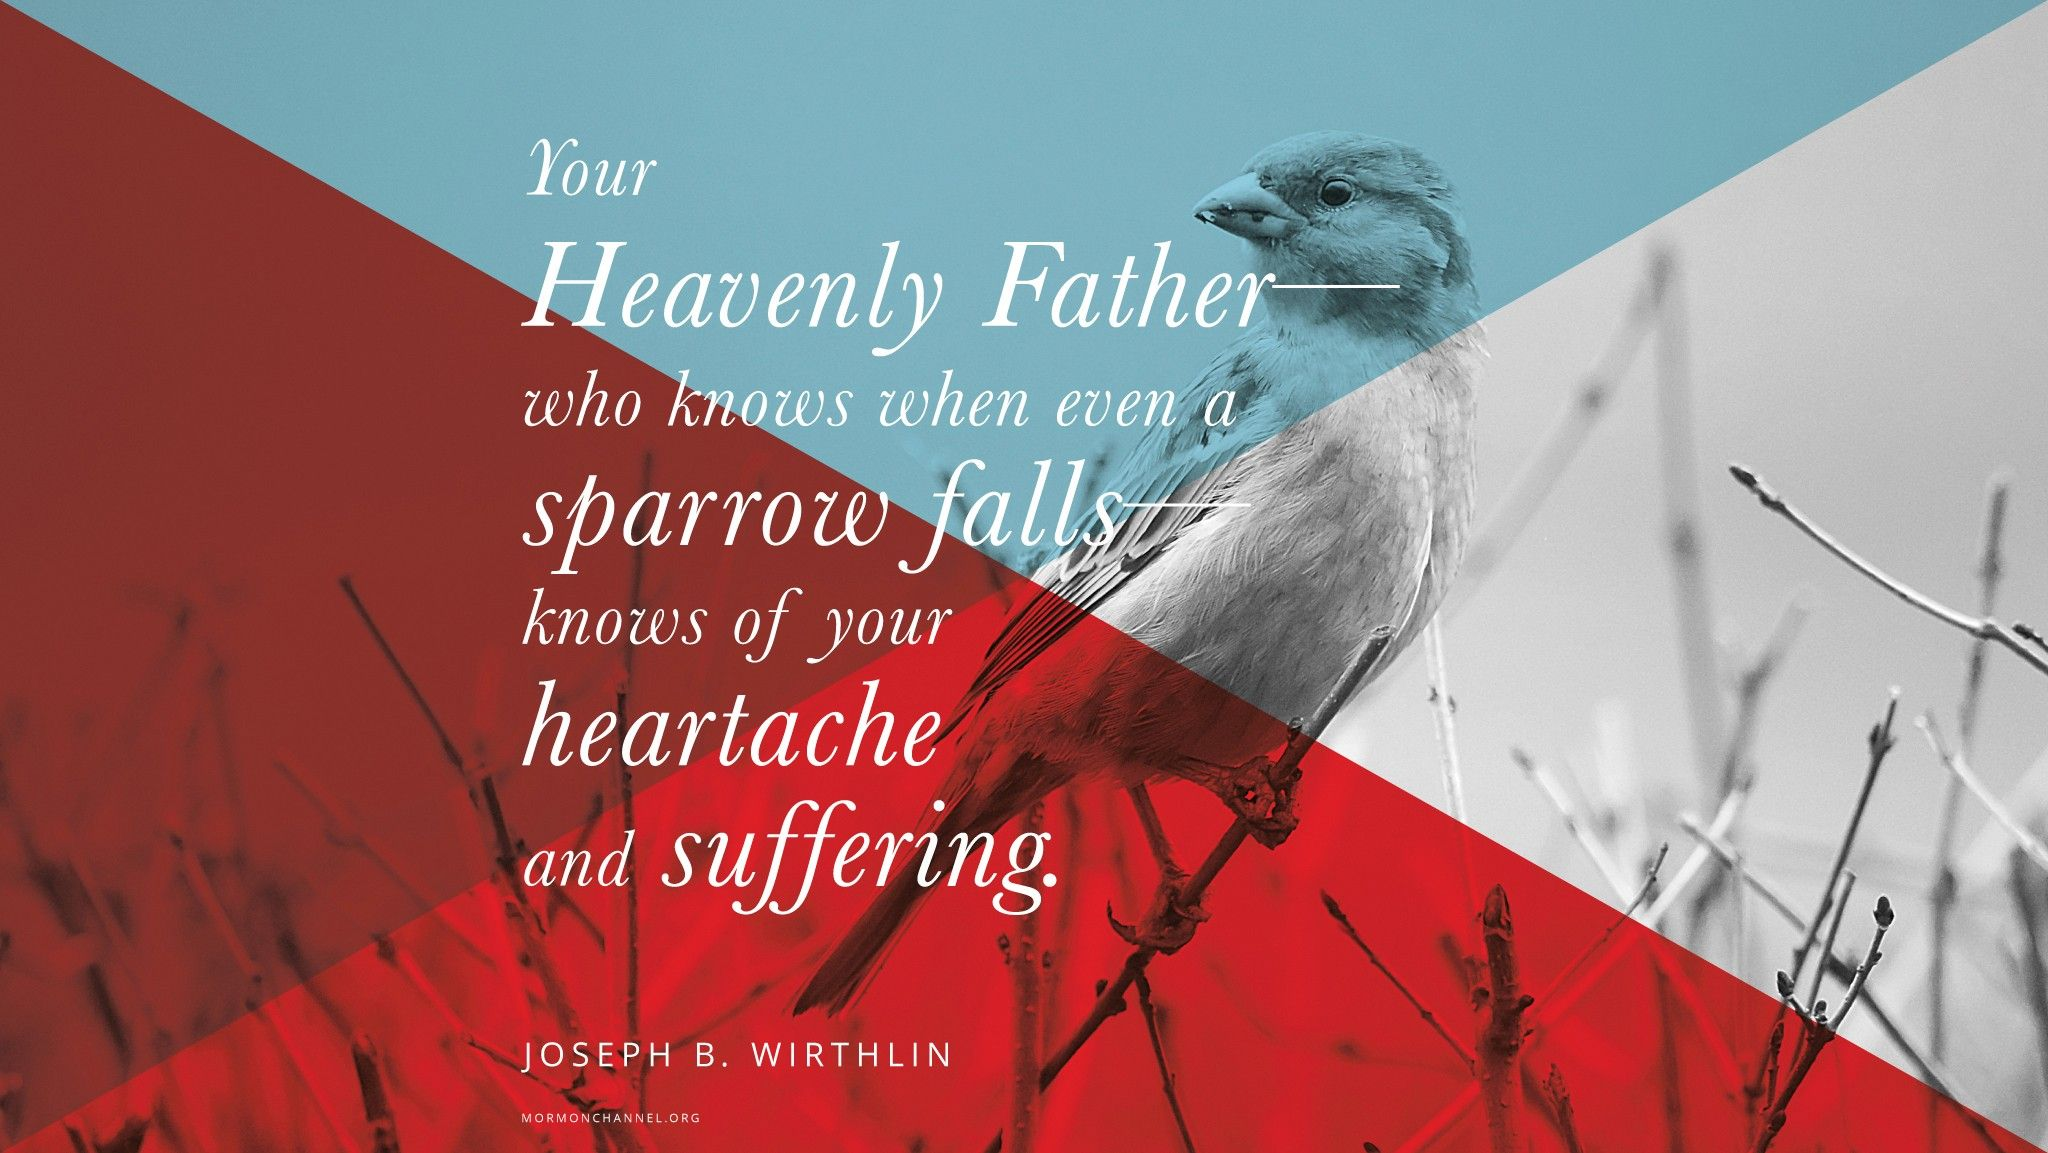 """""""Your Heavenly Father—who knows when even a sparrow falls—knows of your heartache and suffering.""""—Elder Joseph B. Wirthlin, """"Finding a Safe Harbor"""" © undefined ipCode 1."""